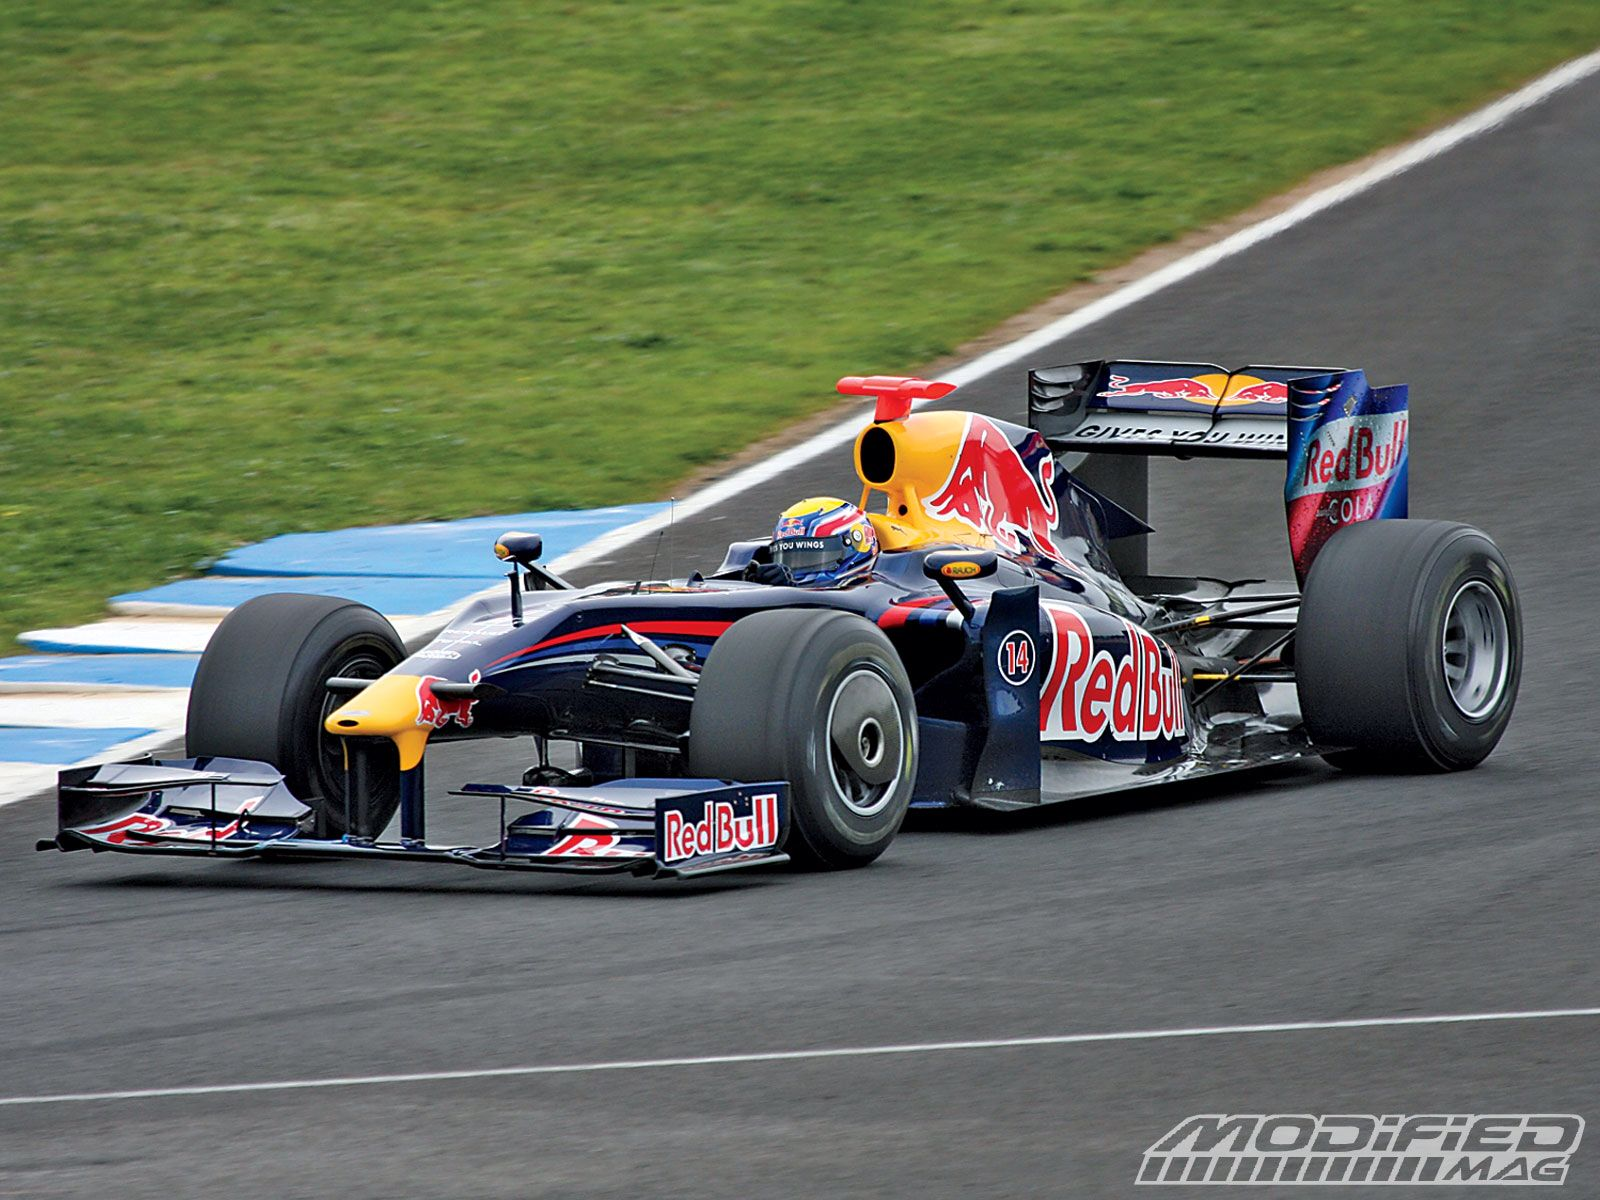 A F1 Car The Doppler Effect In Action Racing Car And Driver Car